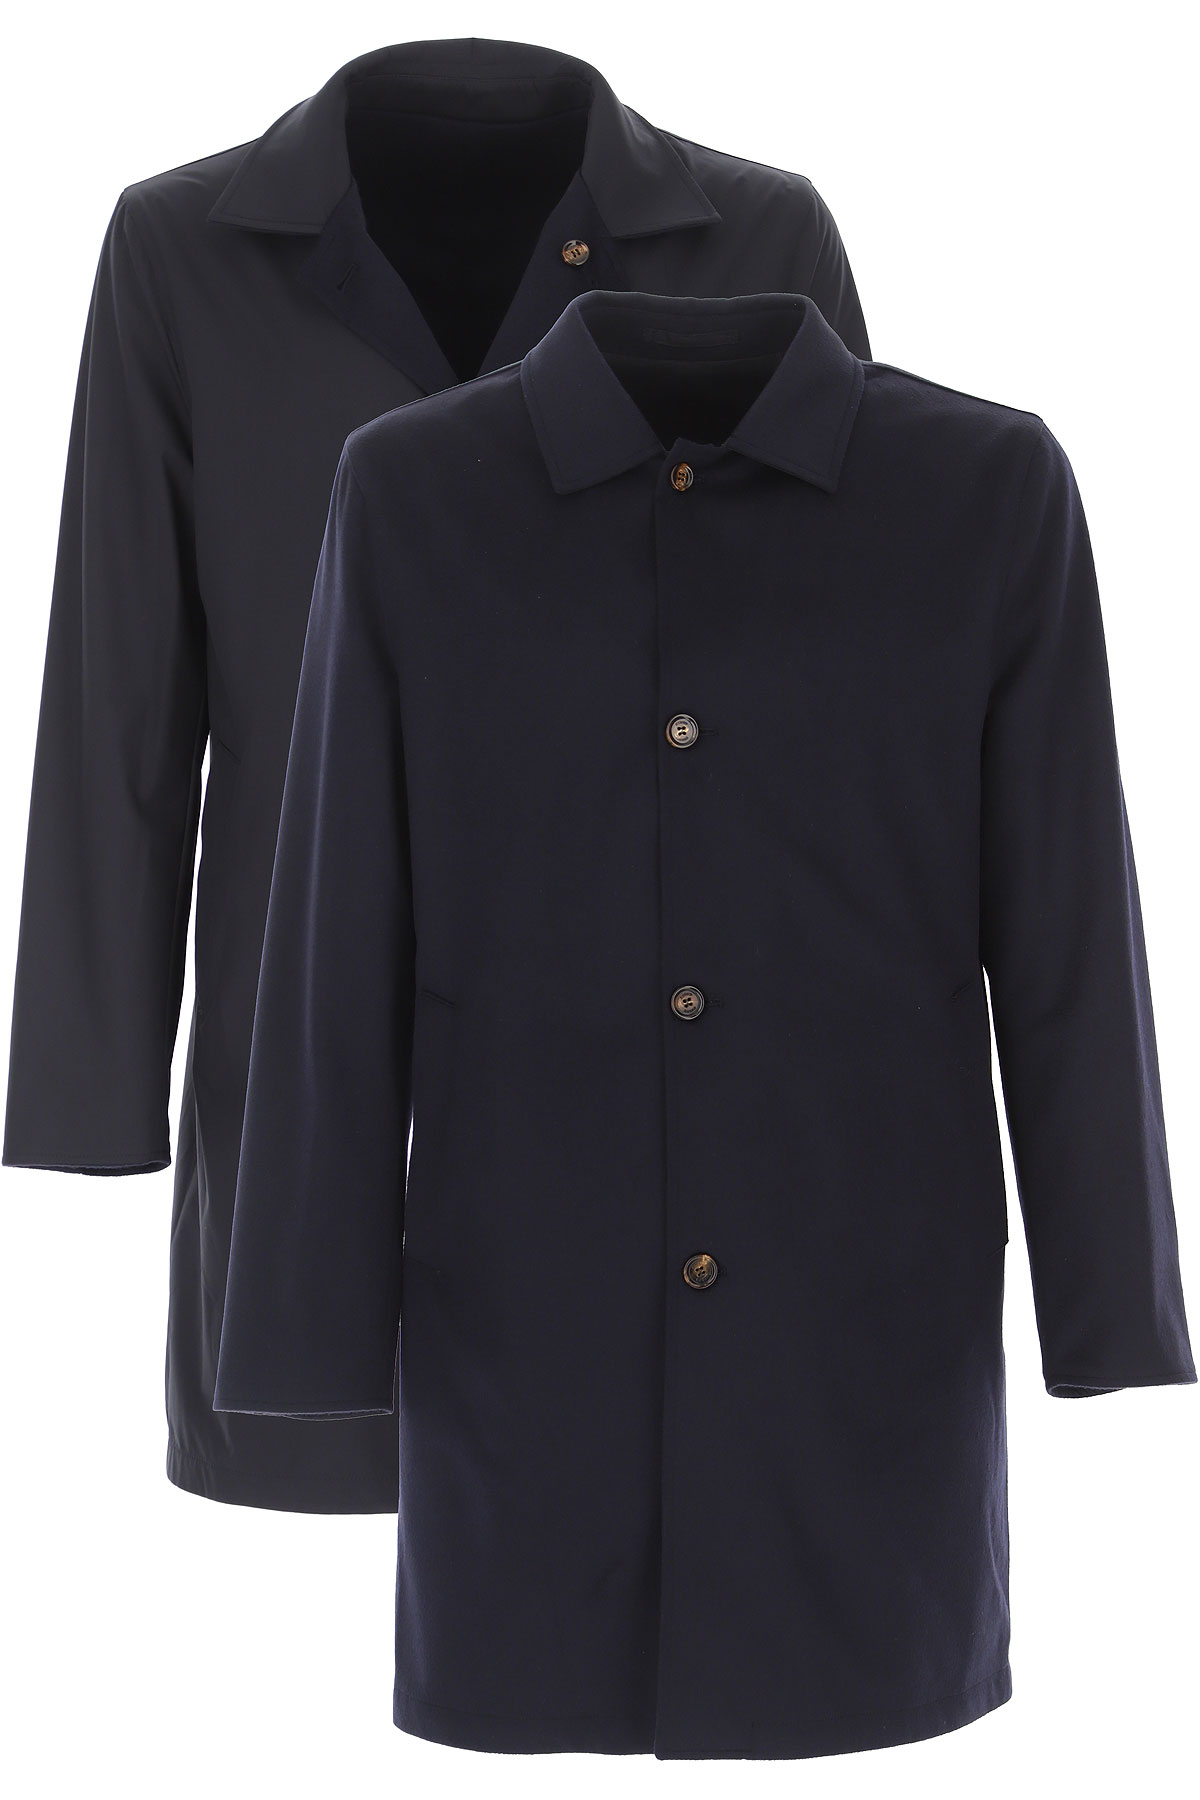 Kired Men's Coat On Sale, navy, Cashemere, 2019, M XL XXL